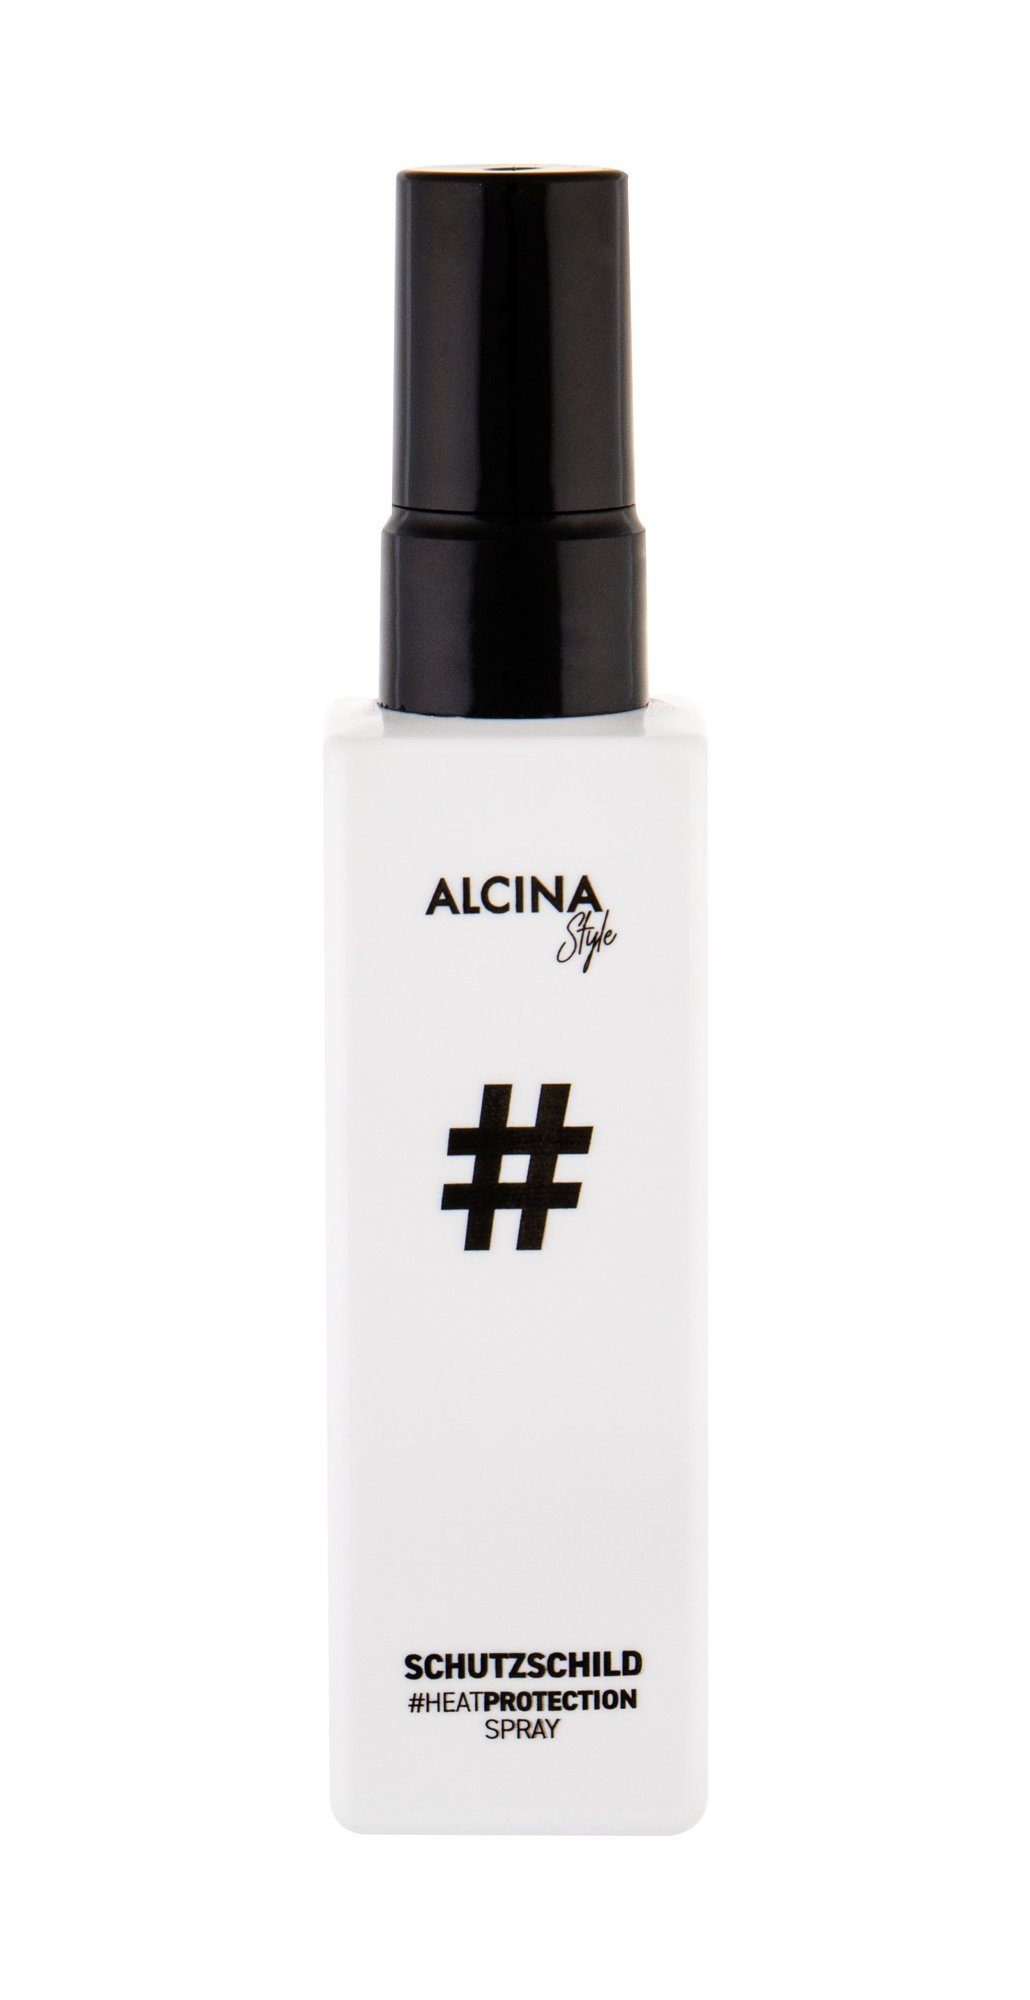 ALCINA #Alcina Style For Heat Hairstyling 100ml  Heat Protection Spray